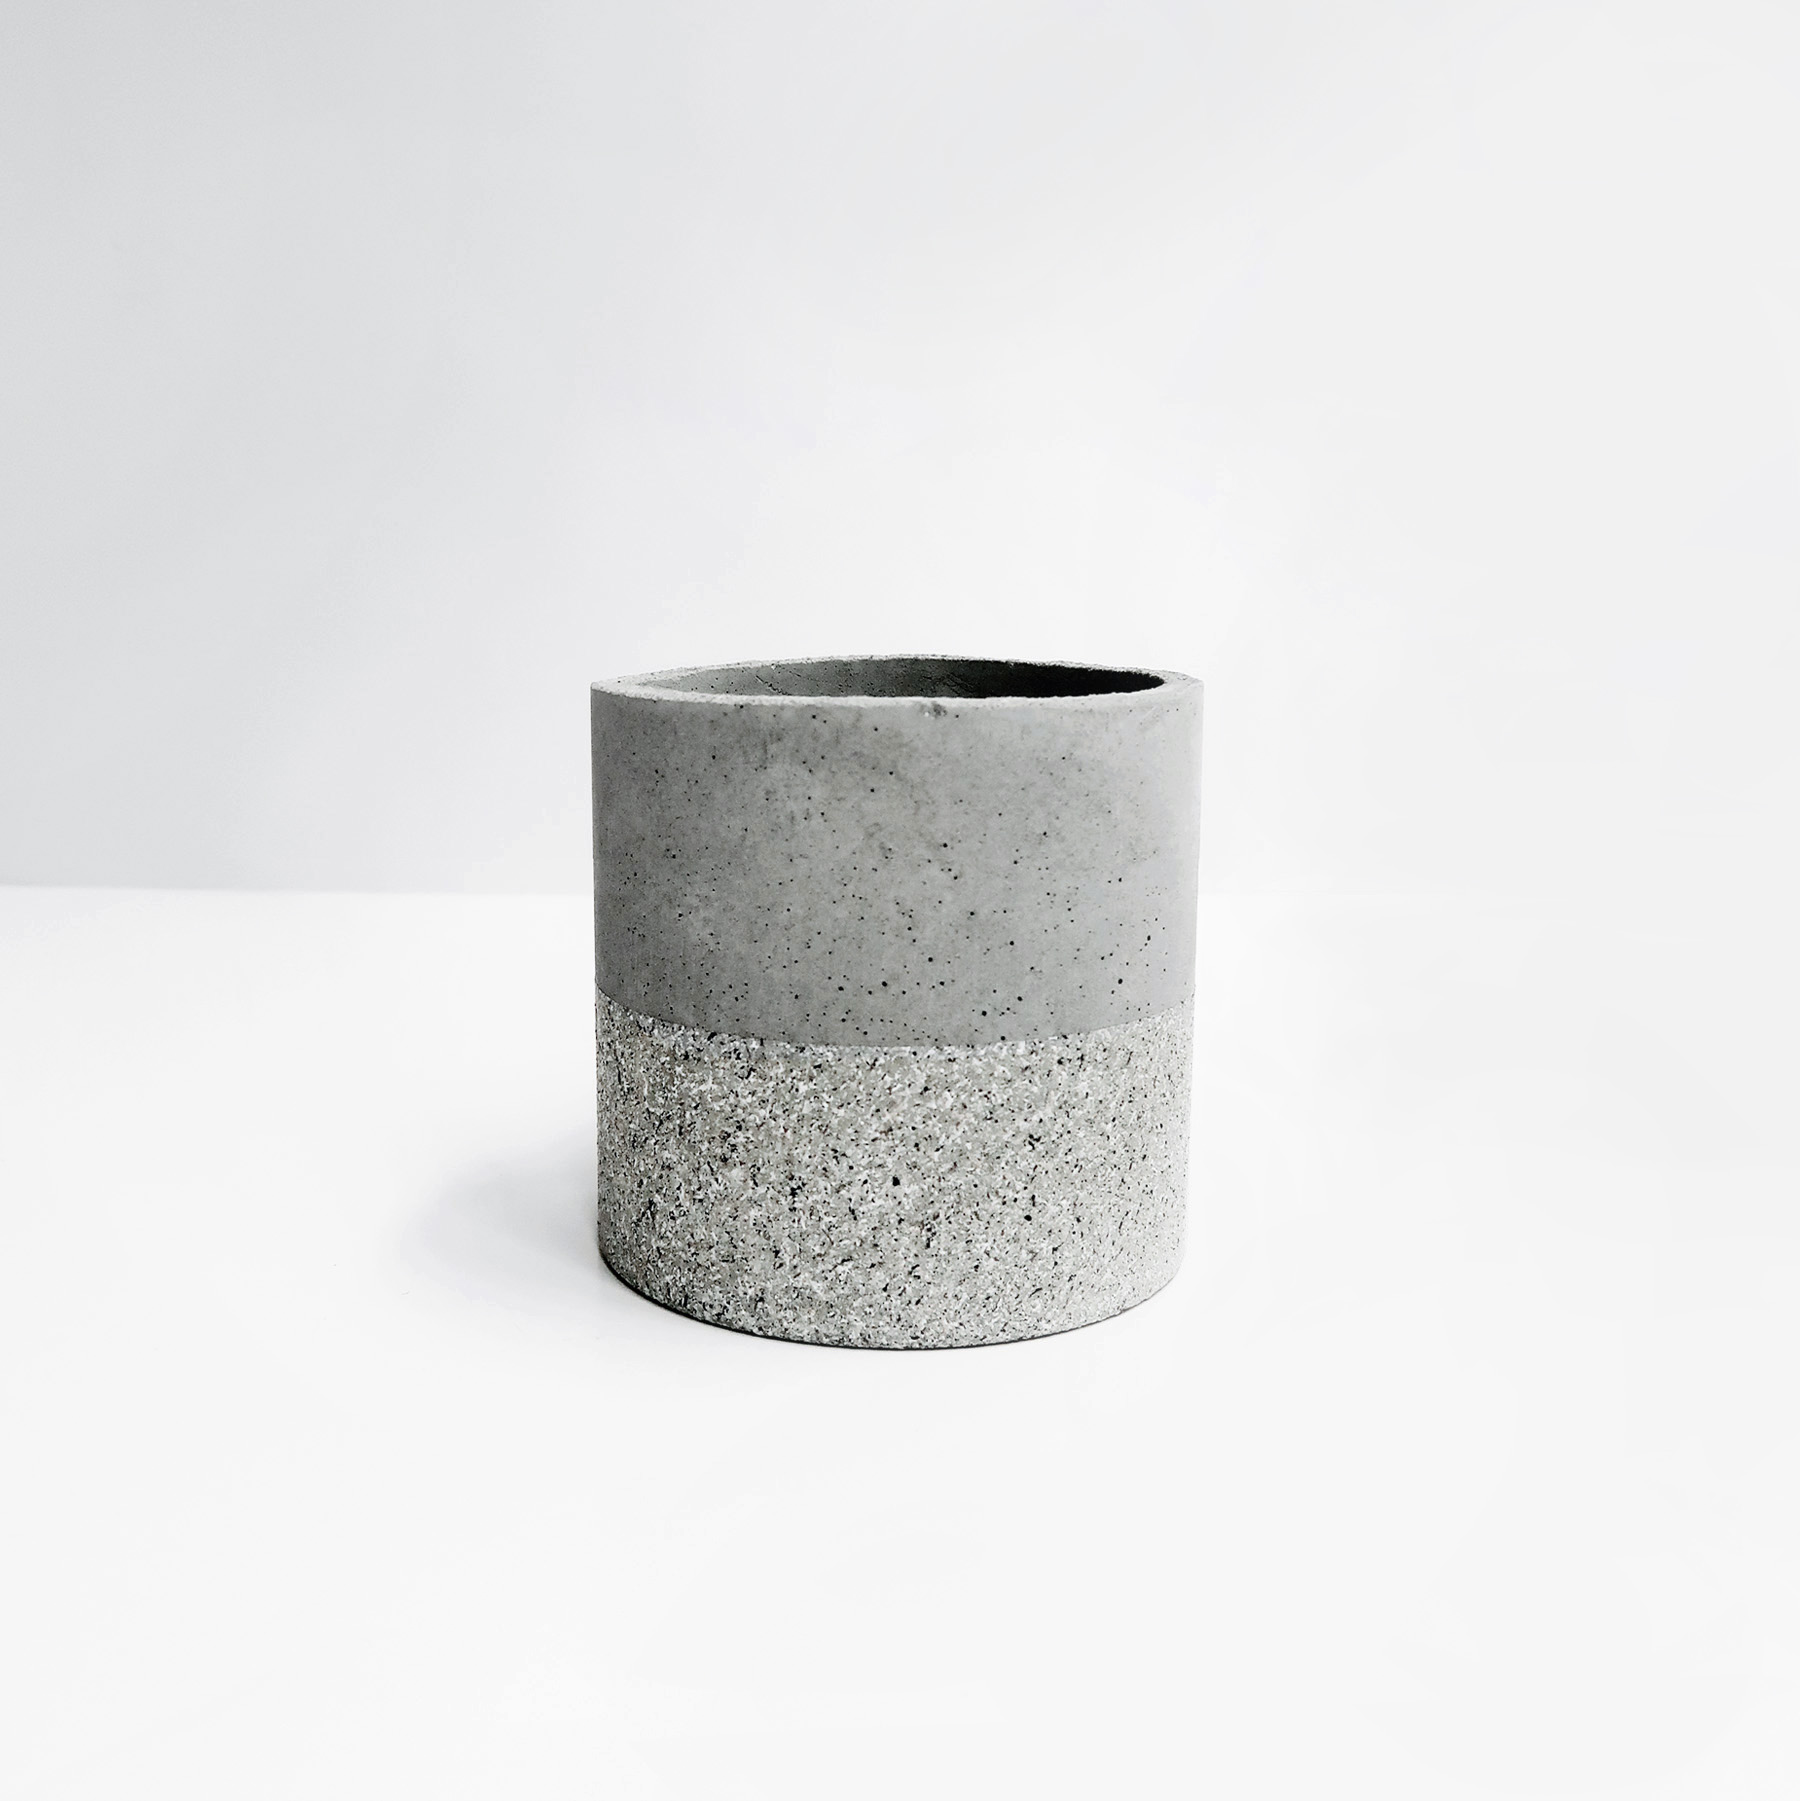 GRANITE 花崗岩等圓水泥盆器 / Moderate cylinder concrete pot